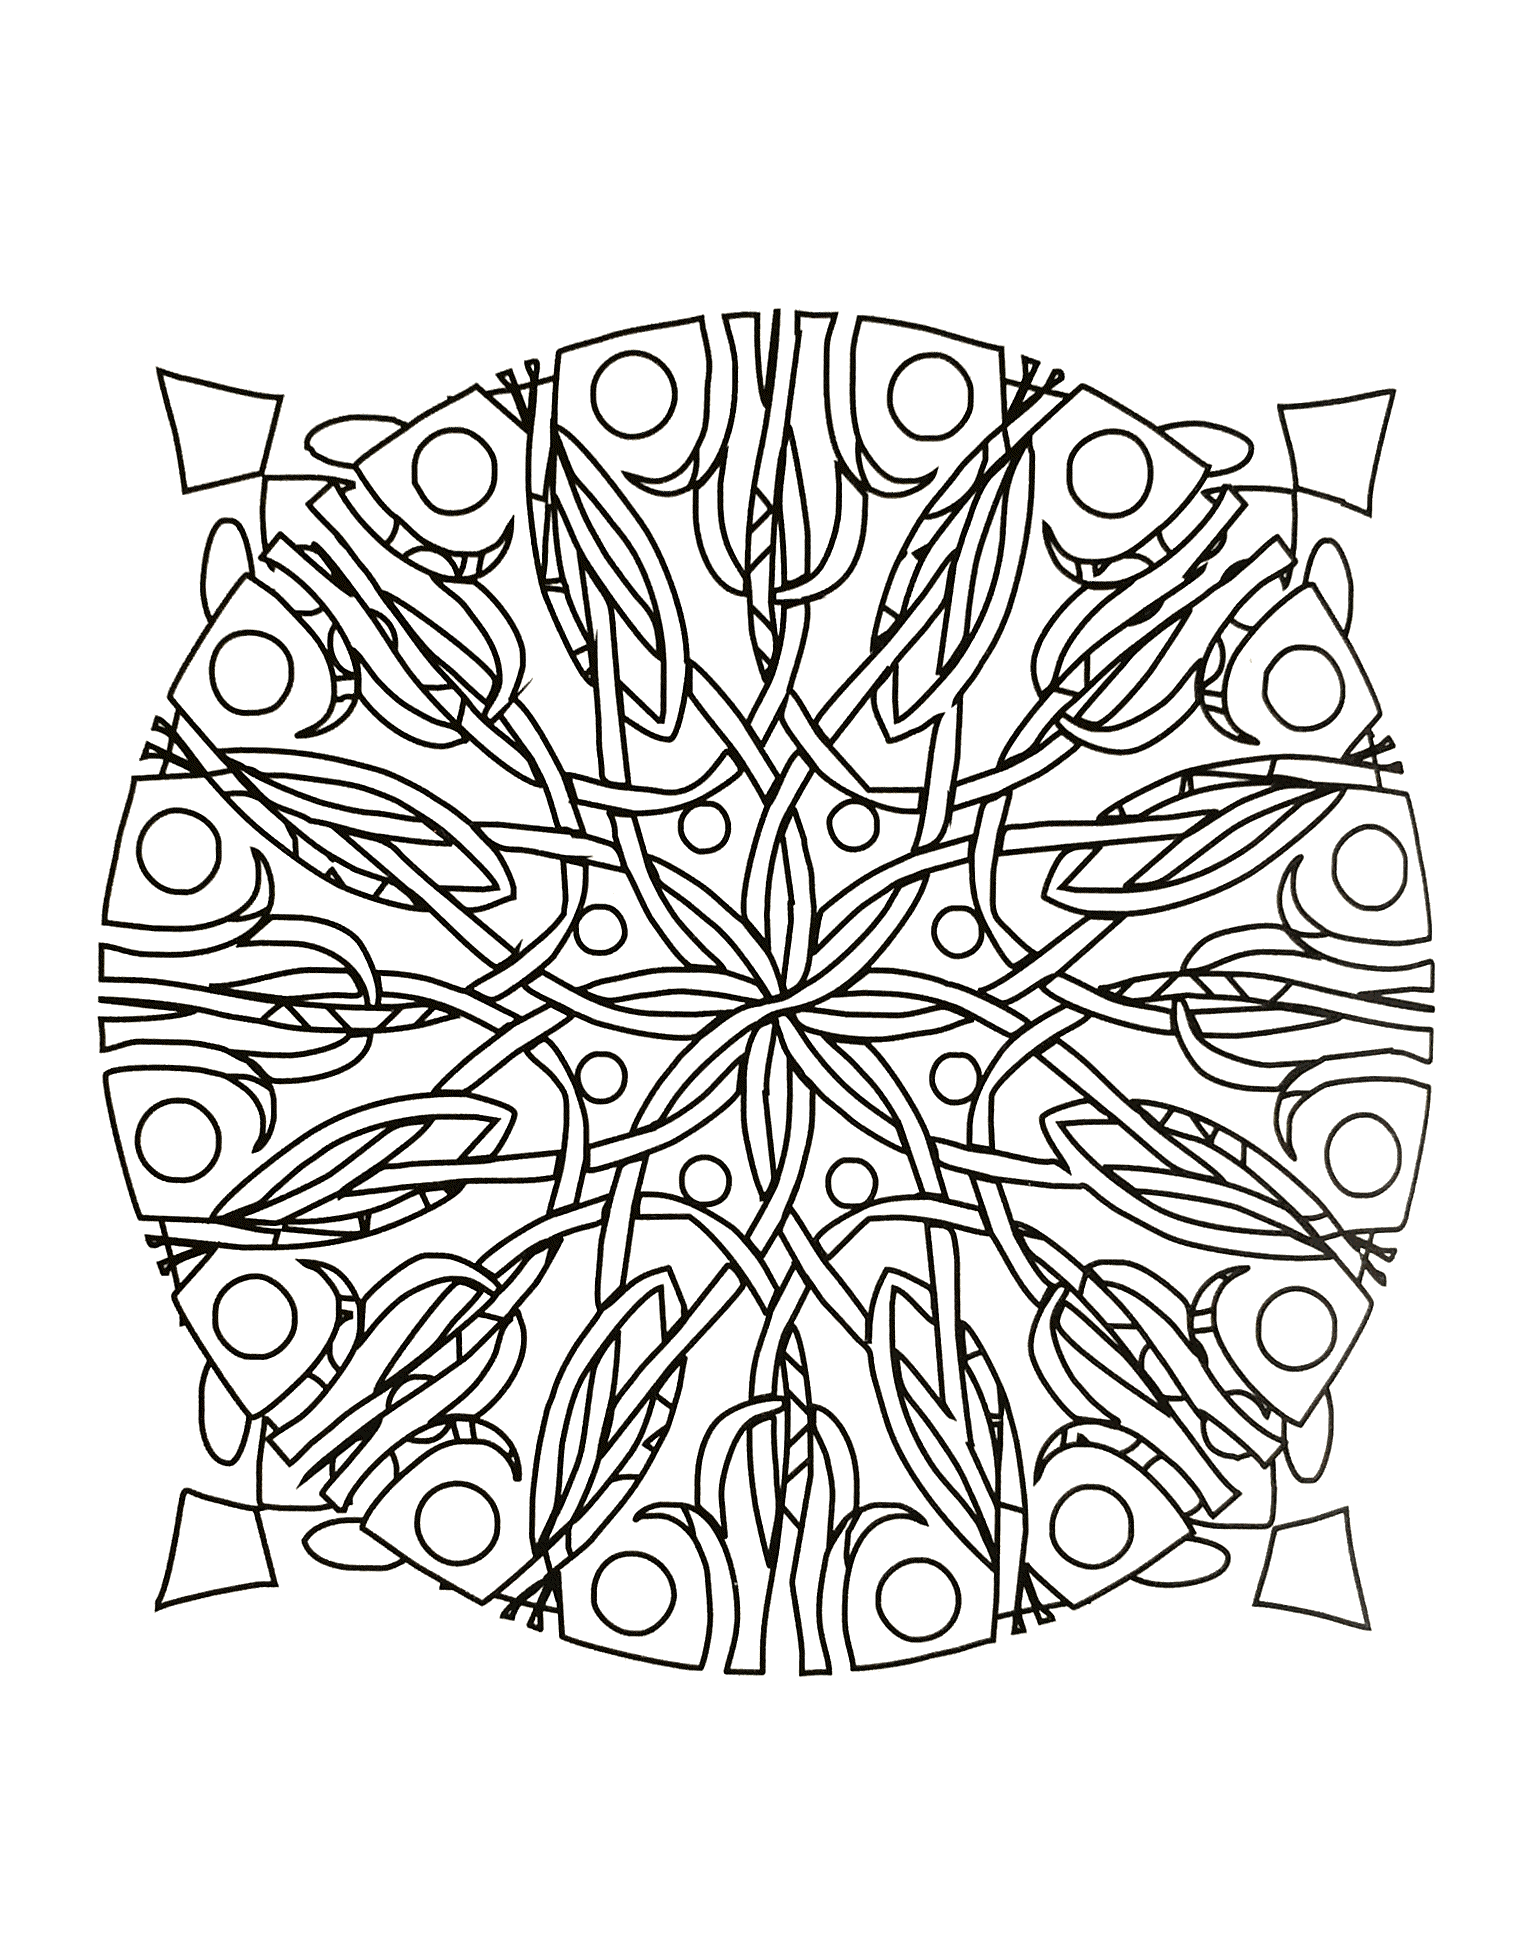 8 image=mandalas coloriage simple mandala a telecharger 5 3